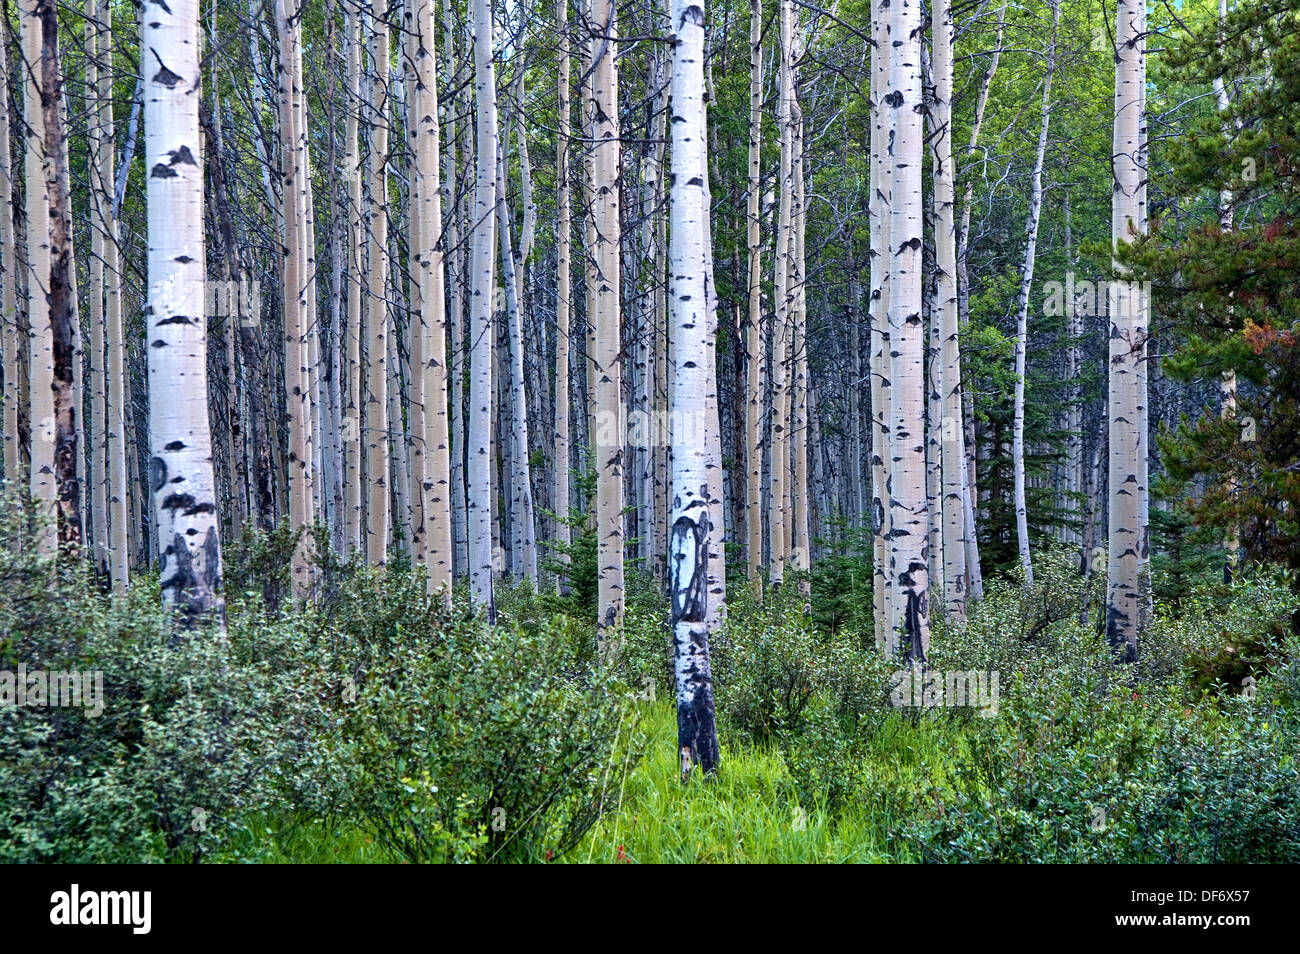 Birch wood forest, - Stock Image